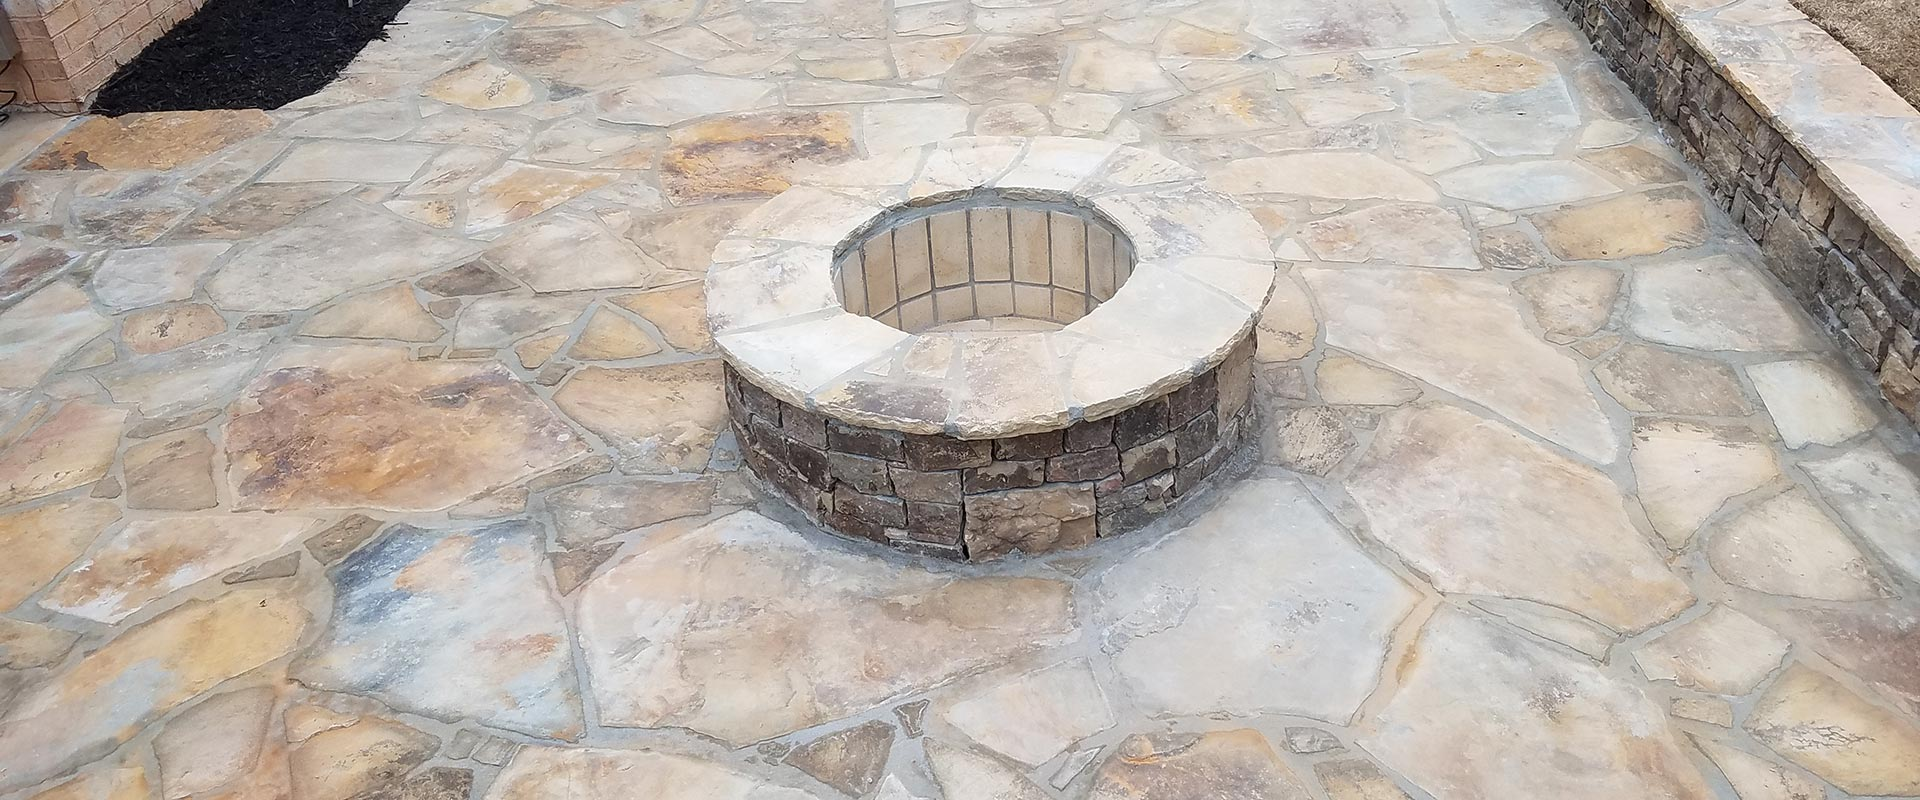 fllagstone patio with a firepit